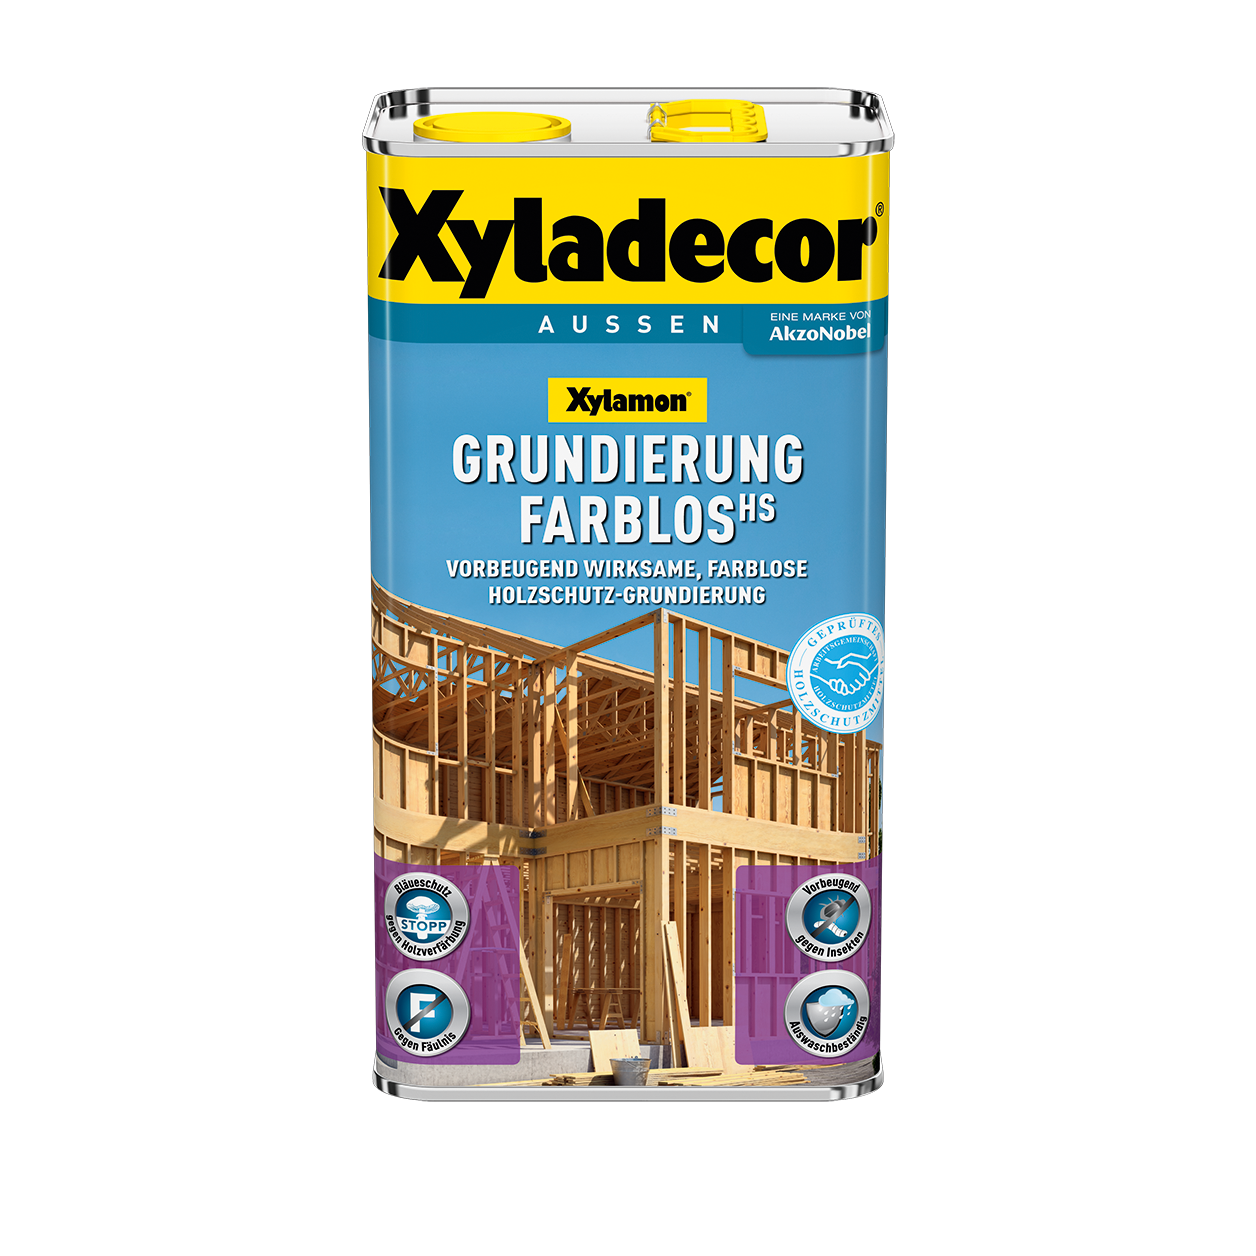 Xyladecor Xylamon Grundierung Farblos BP